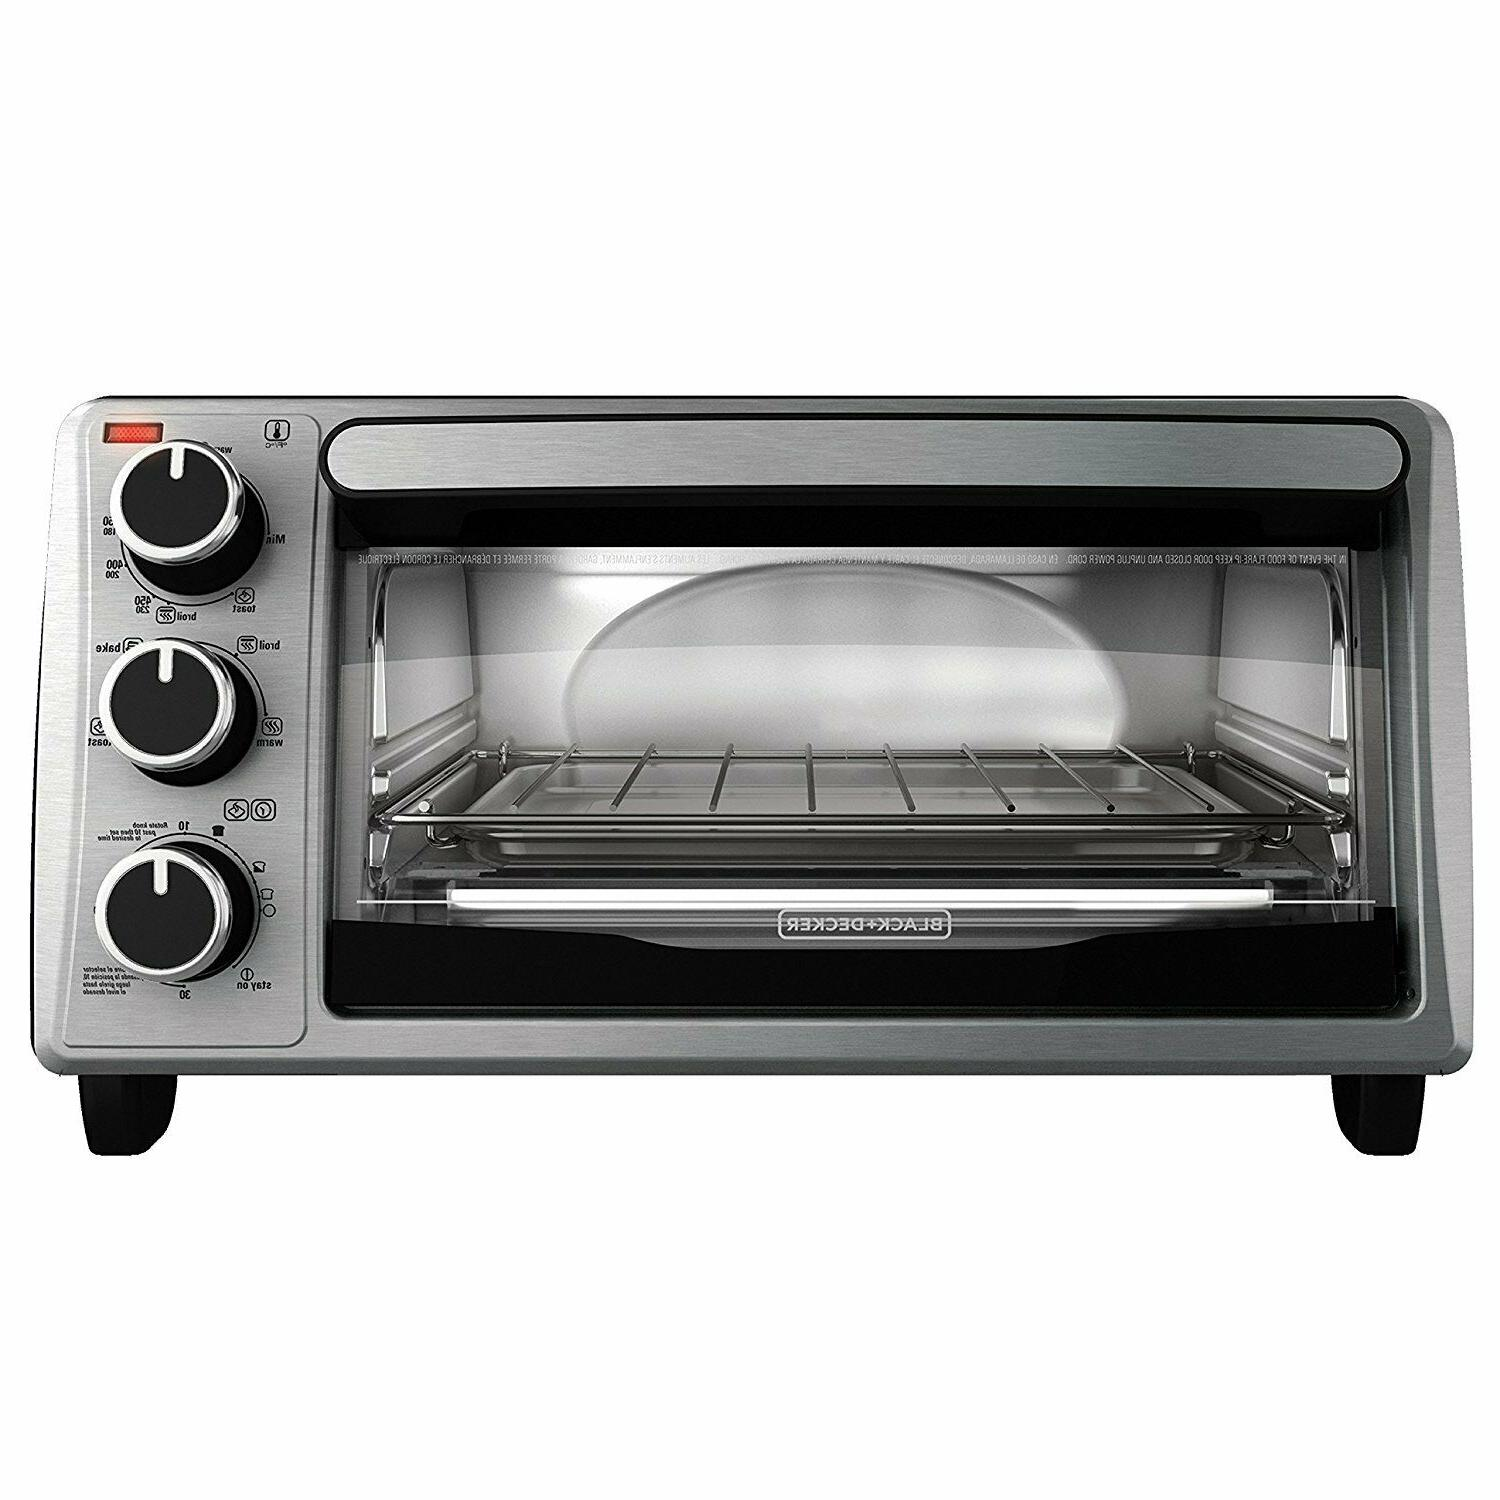 DECKER TO1303SB 4-Slice Toaster Oven - Black